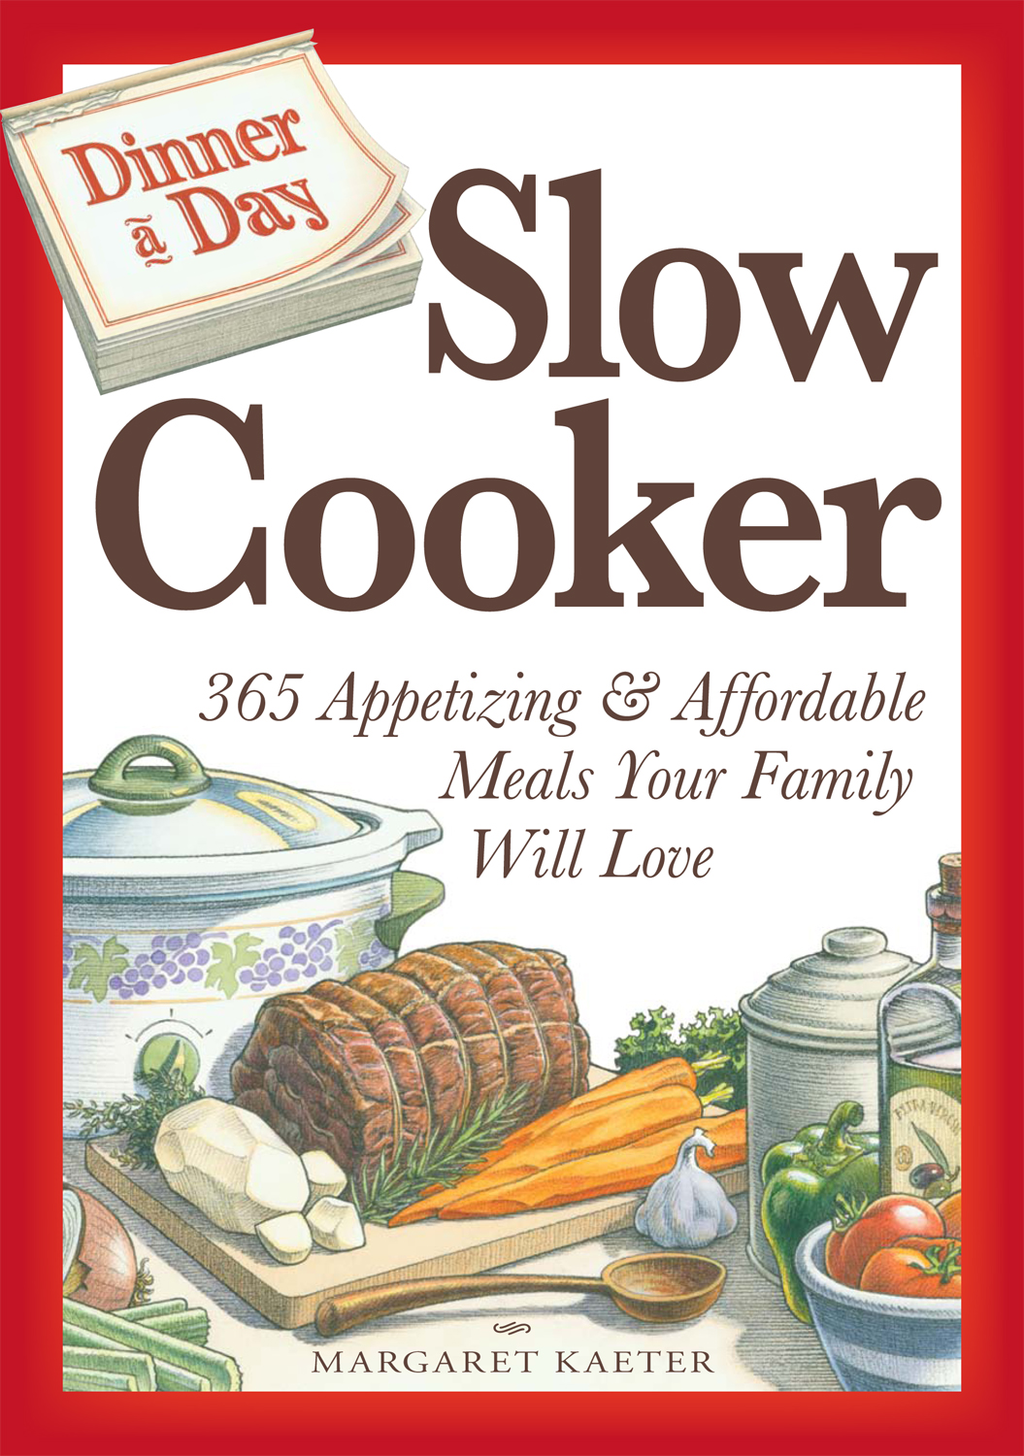 Dinner a Day Slow Cooker 365 Appetizing and Affordable Meals Your Family Will Love